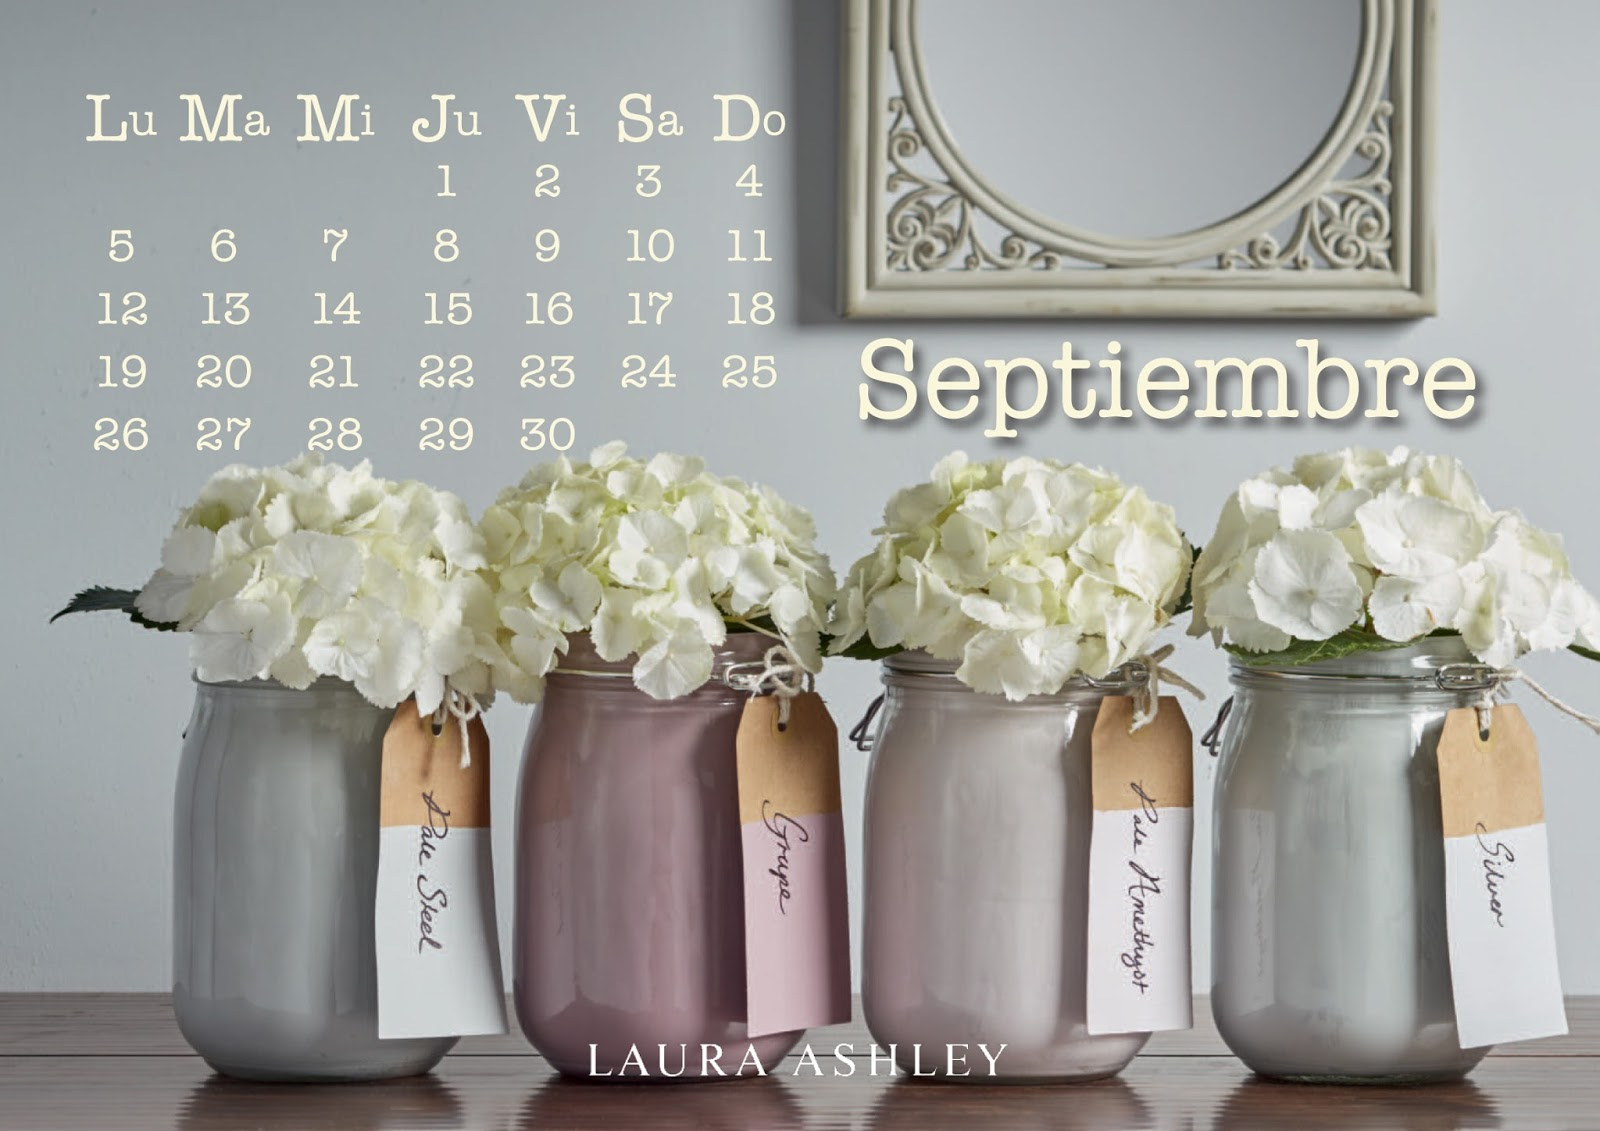 El blog de decoracion de laura ashley descargables - Decoracion laura ashley ...